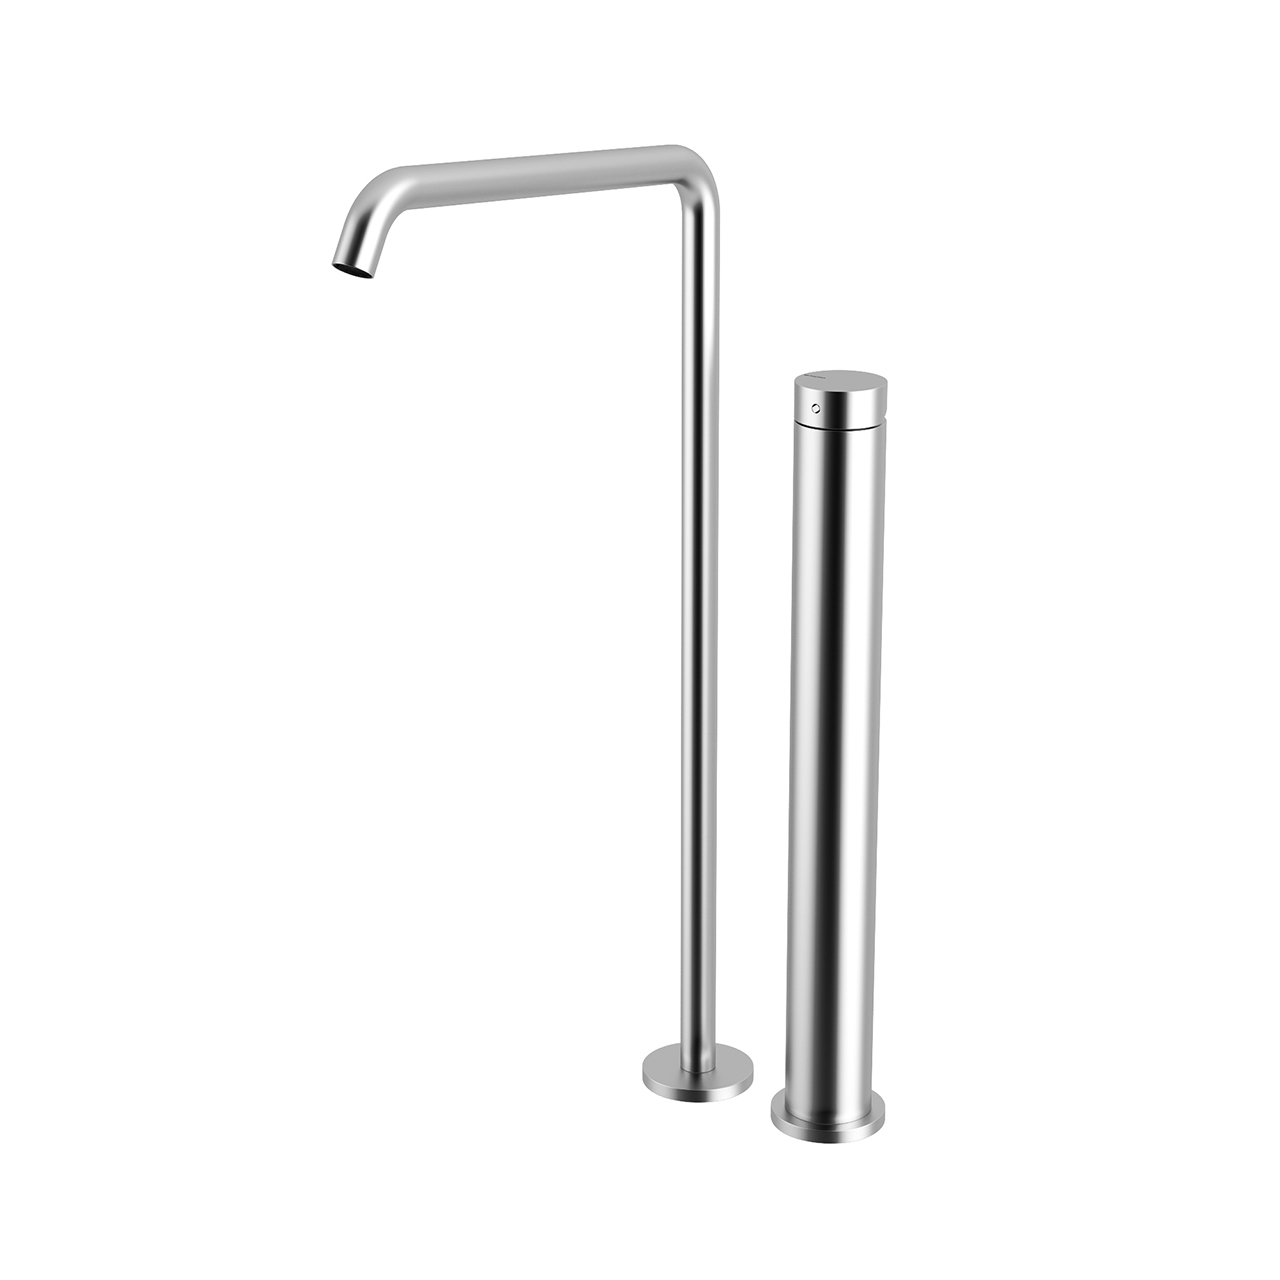 OX Floorstanding Taps by Makro